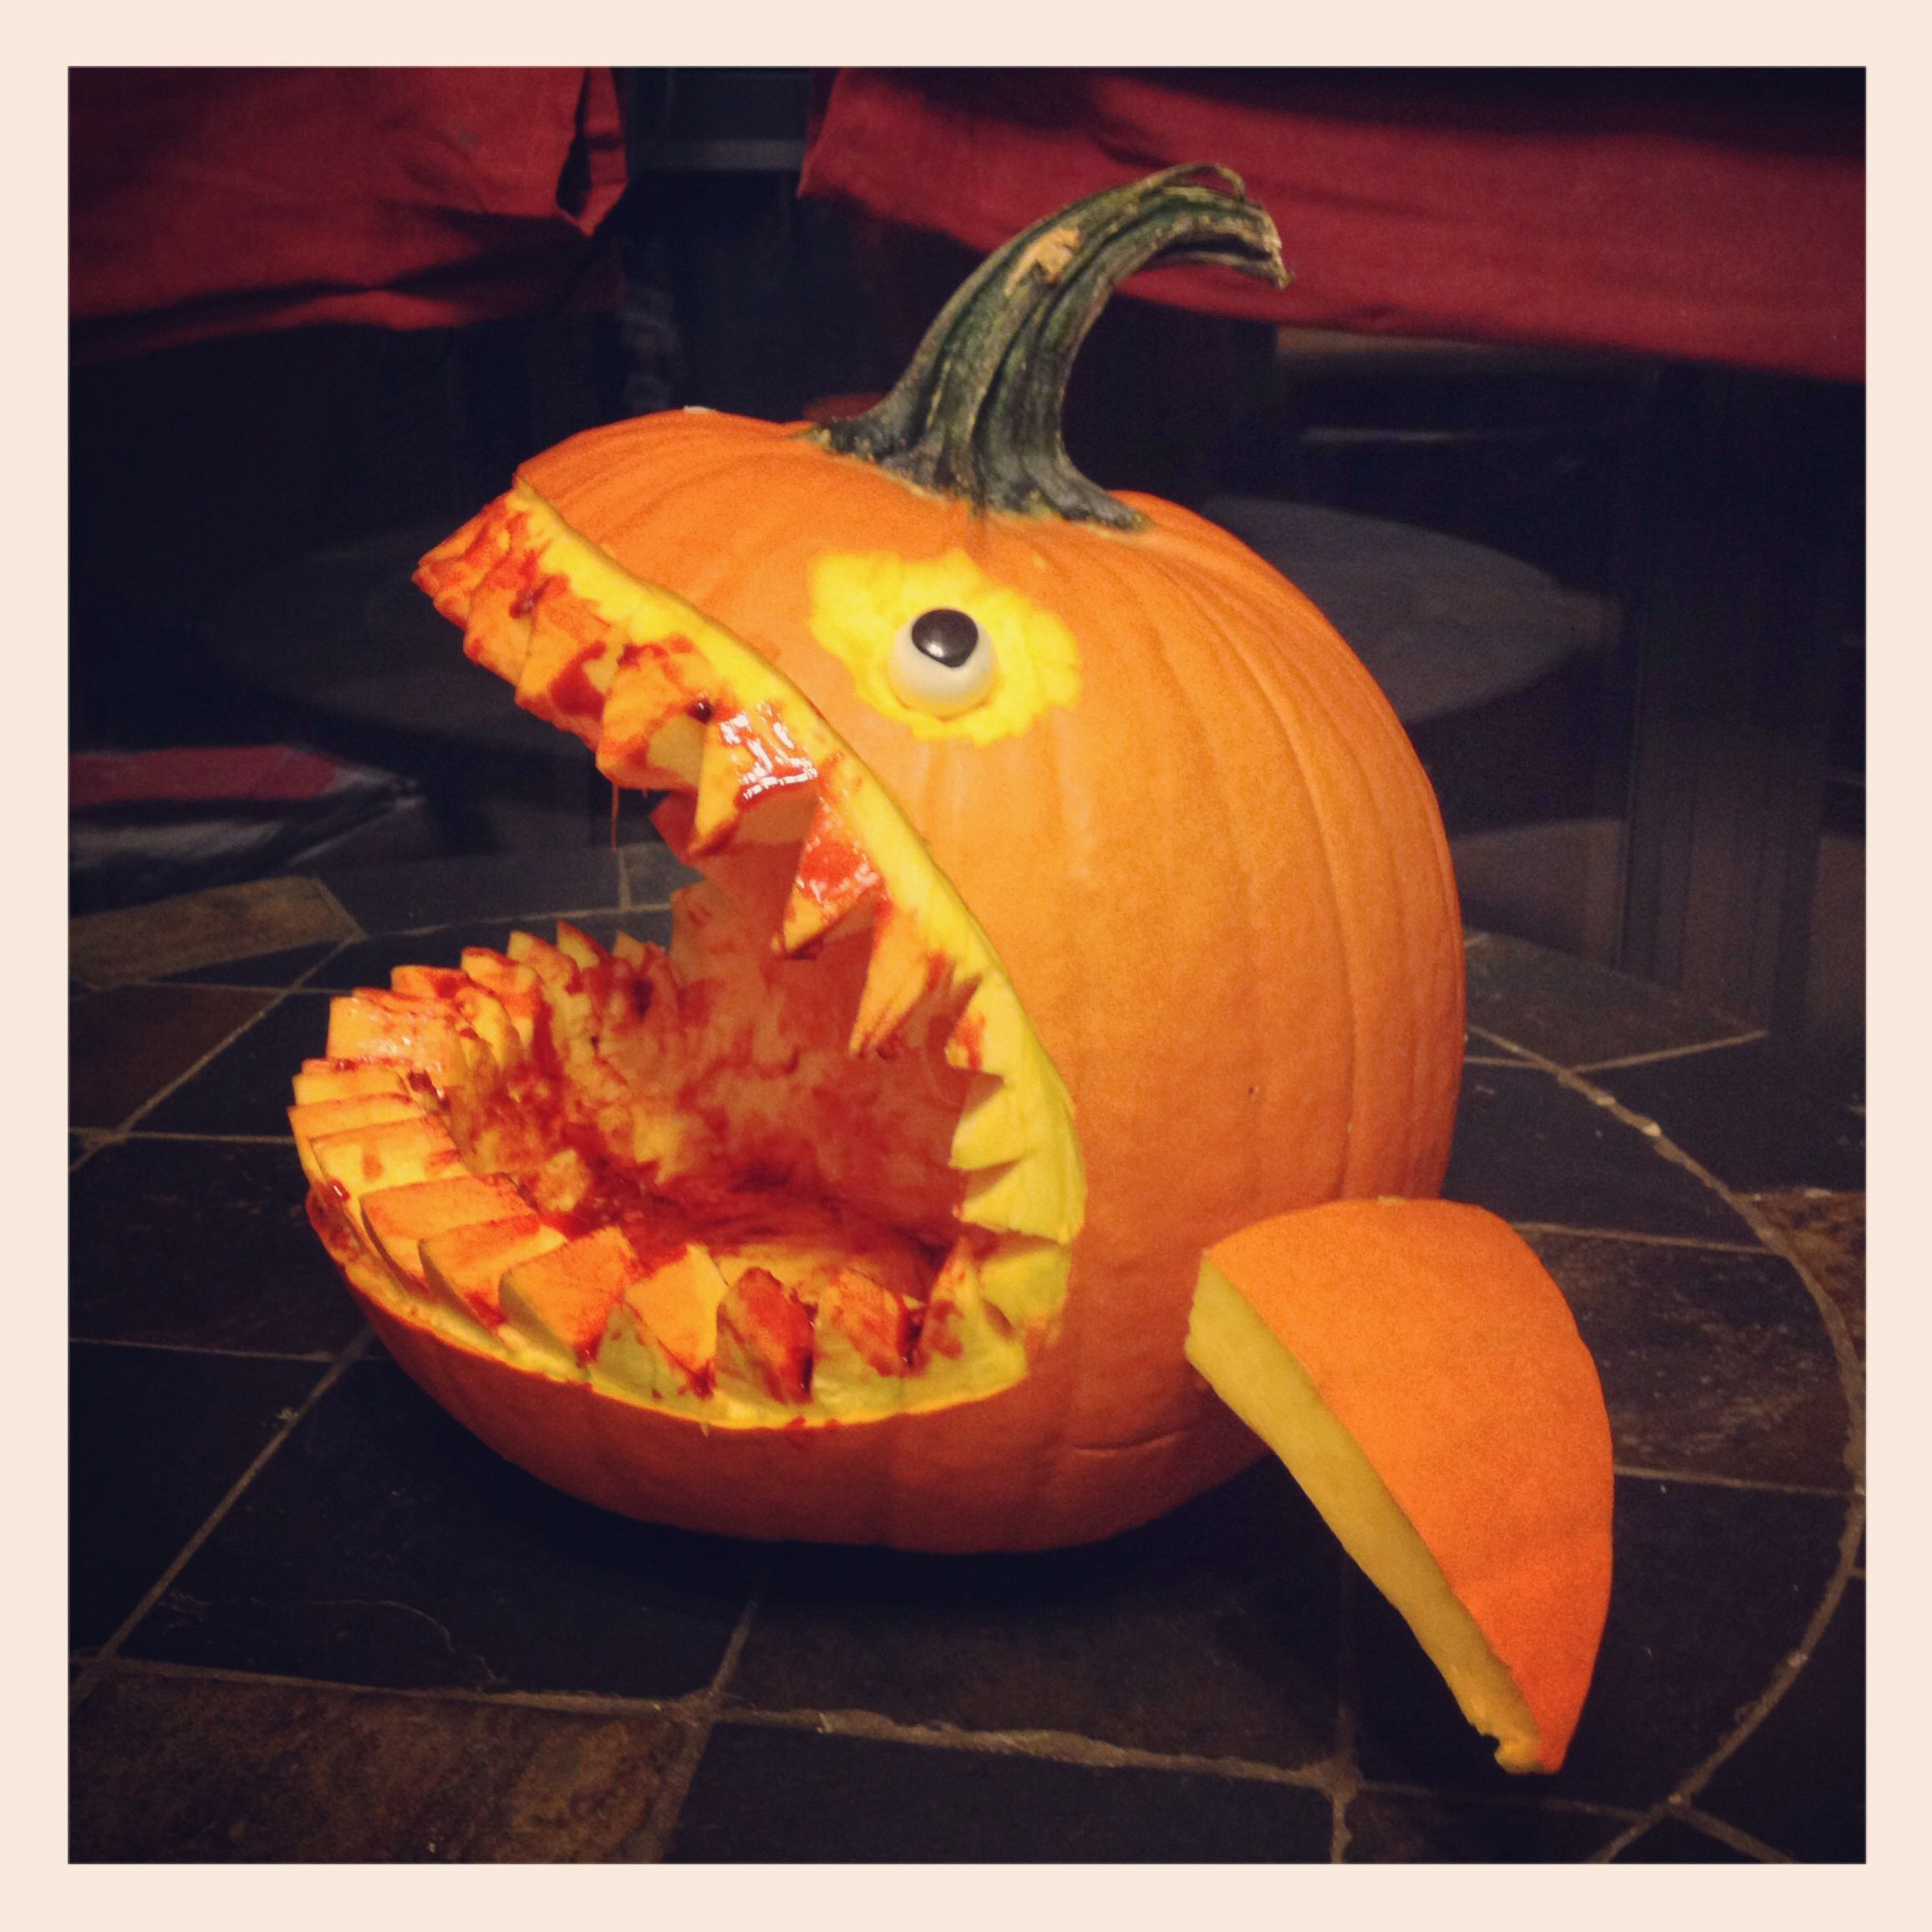 My carved shark pumpkin or as I call it the